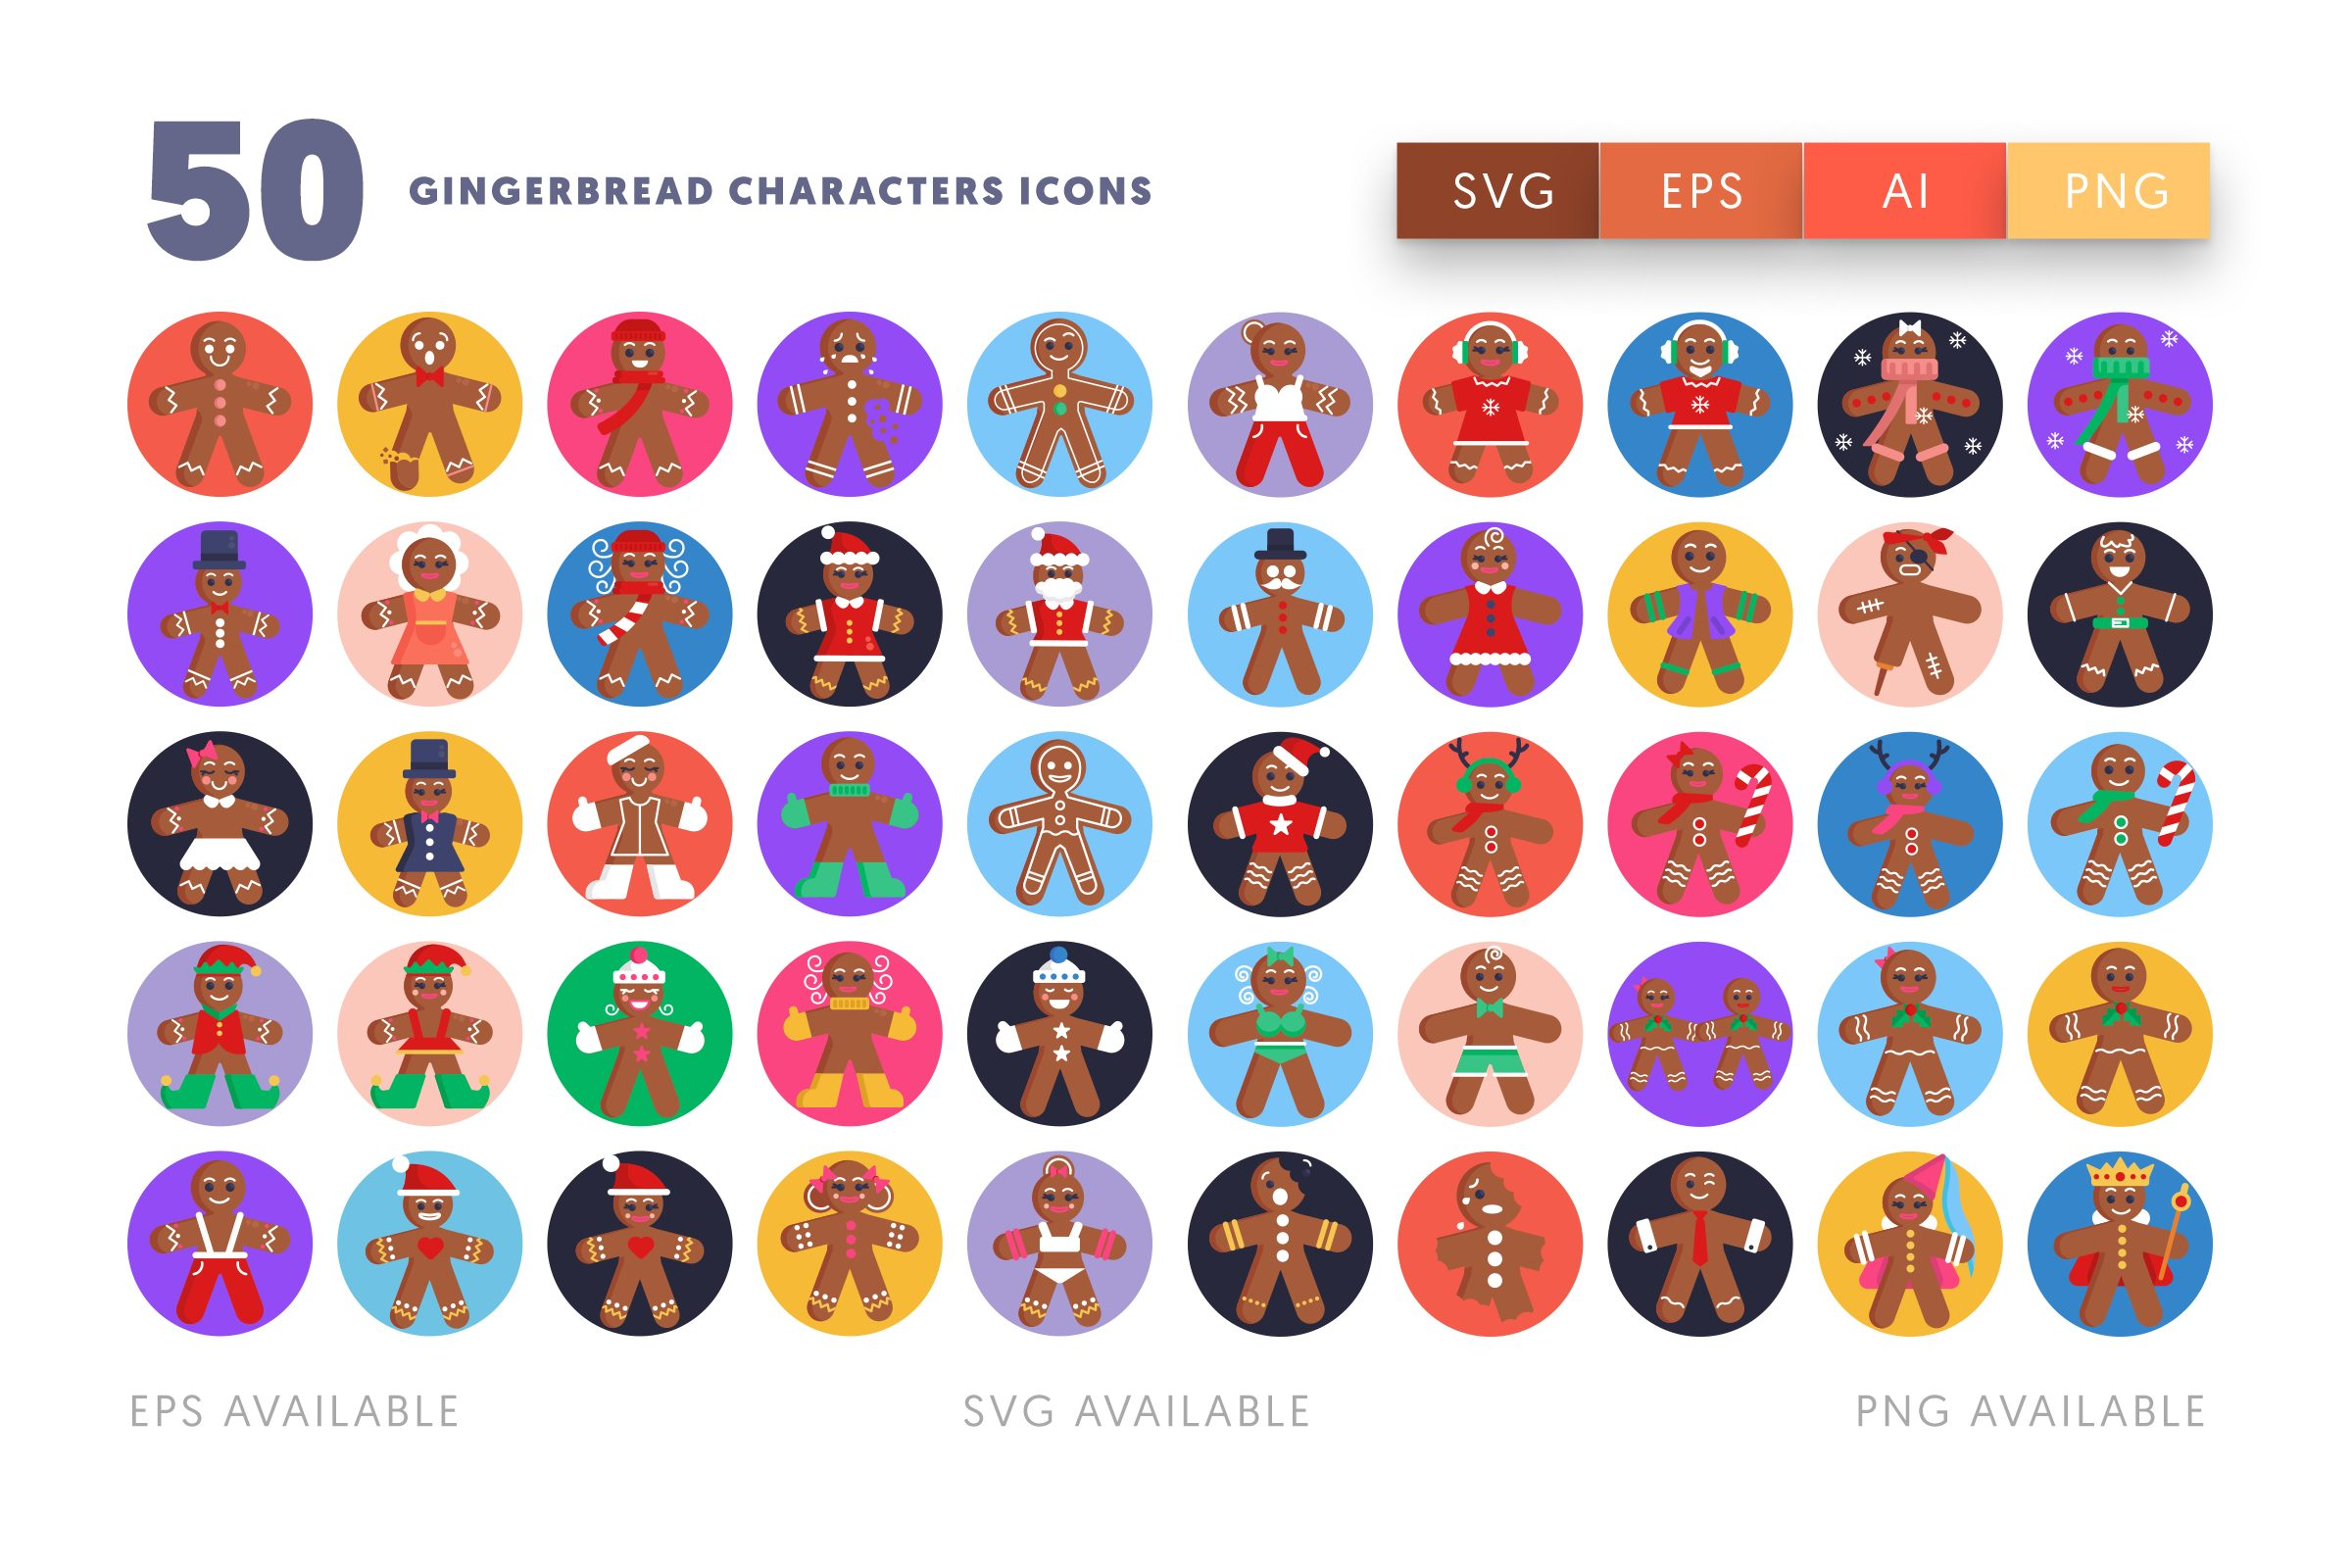 Gingerbread Characters icons png/svg/eps